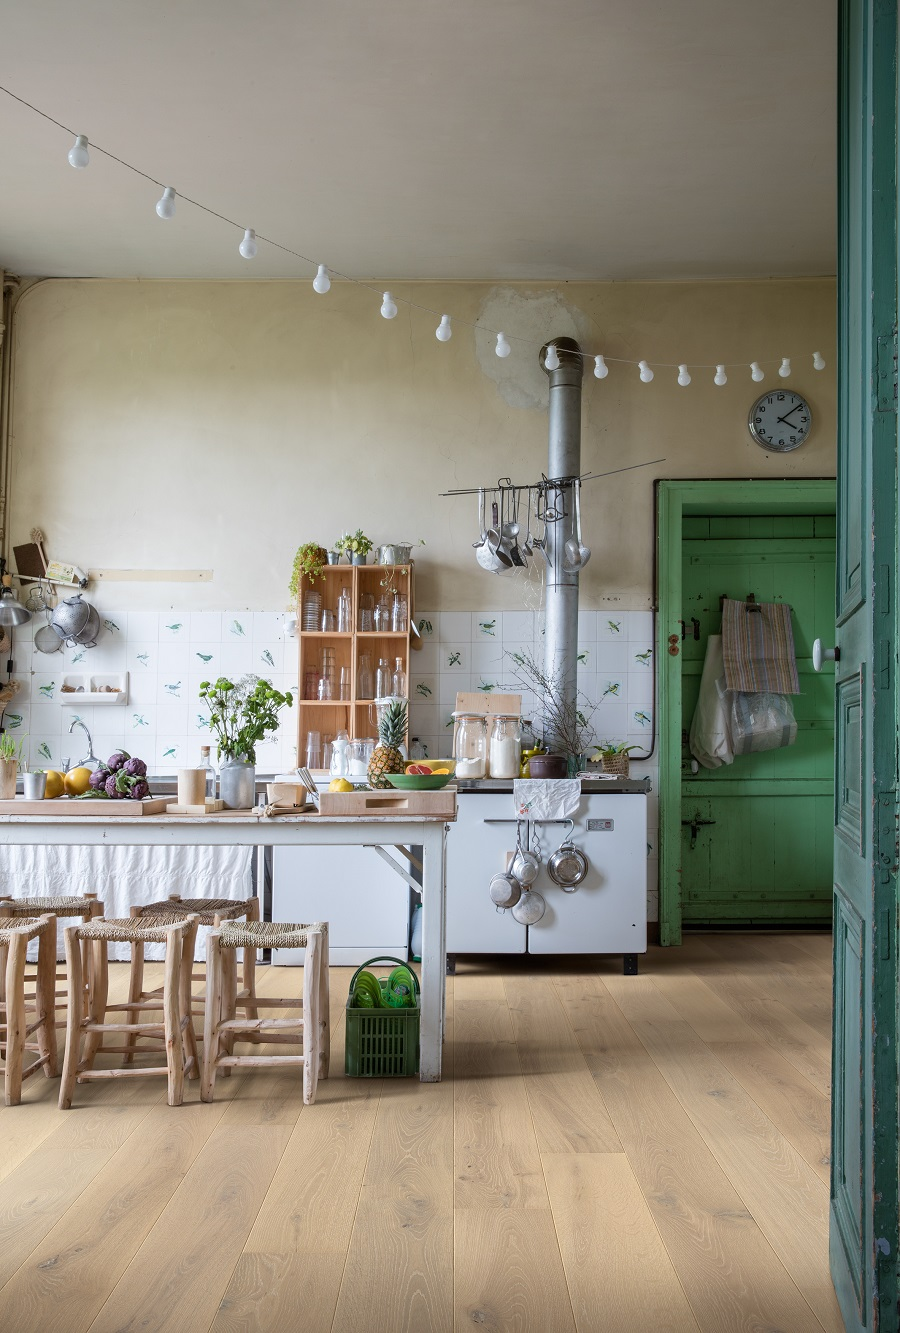 An Undecorated Kitchen That Exudes Warmth - Get The Look